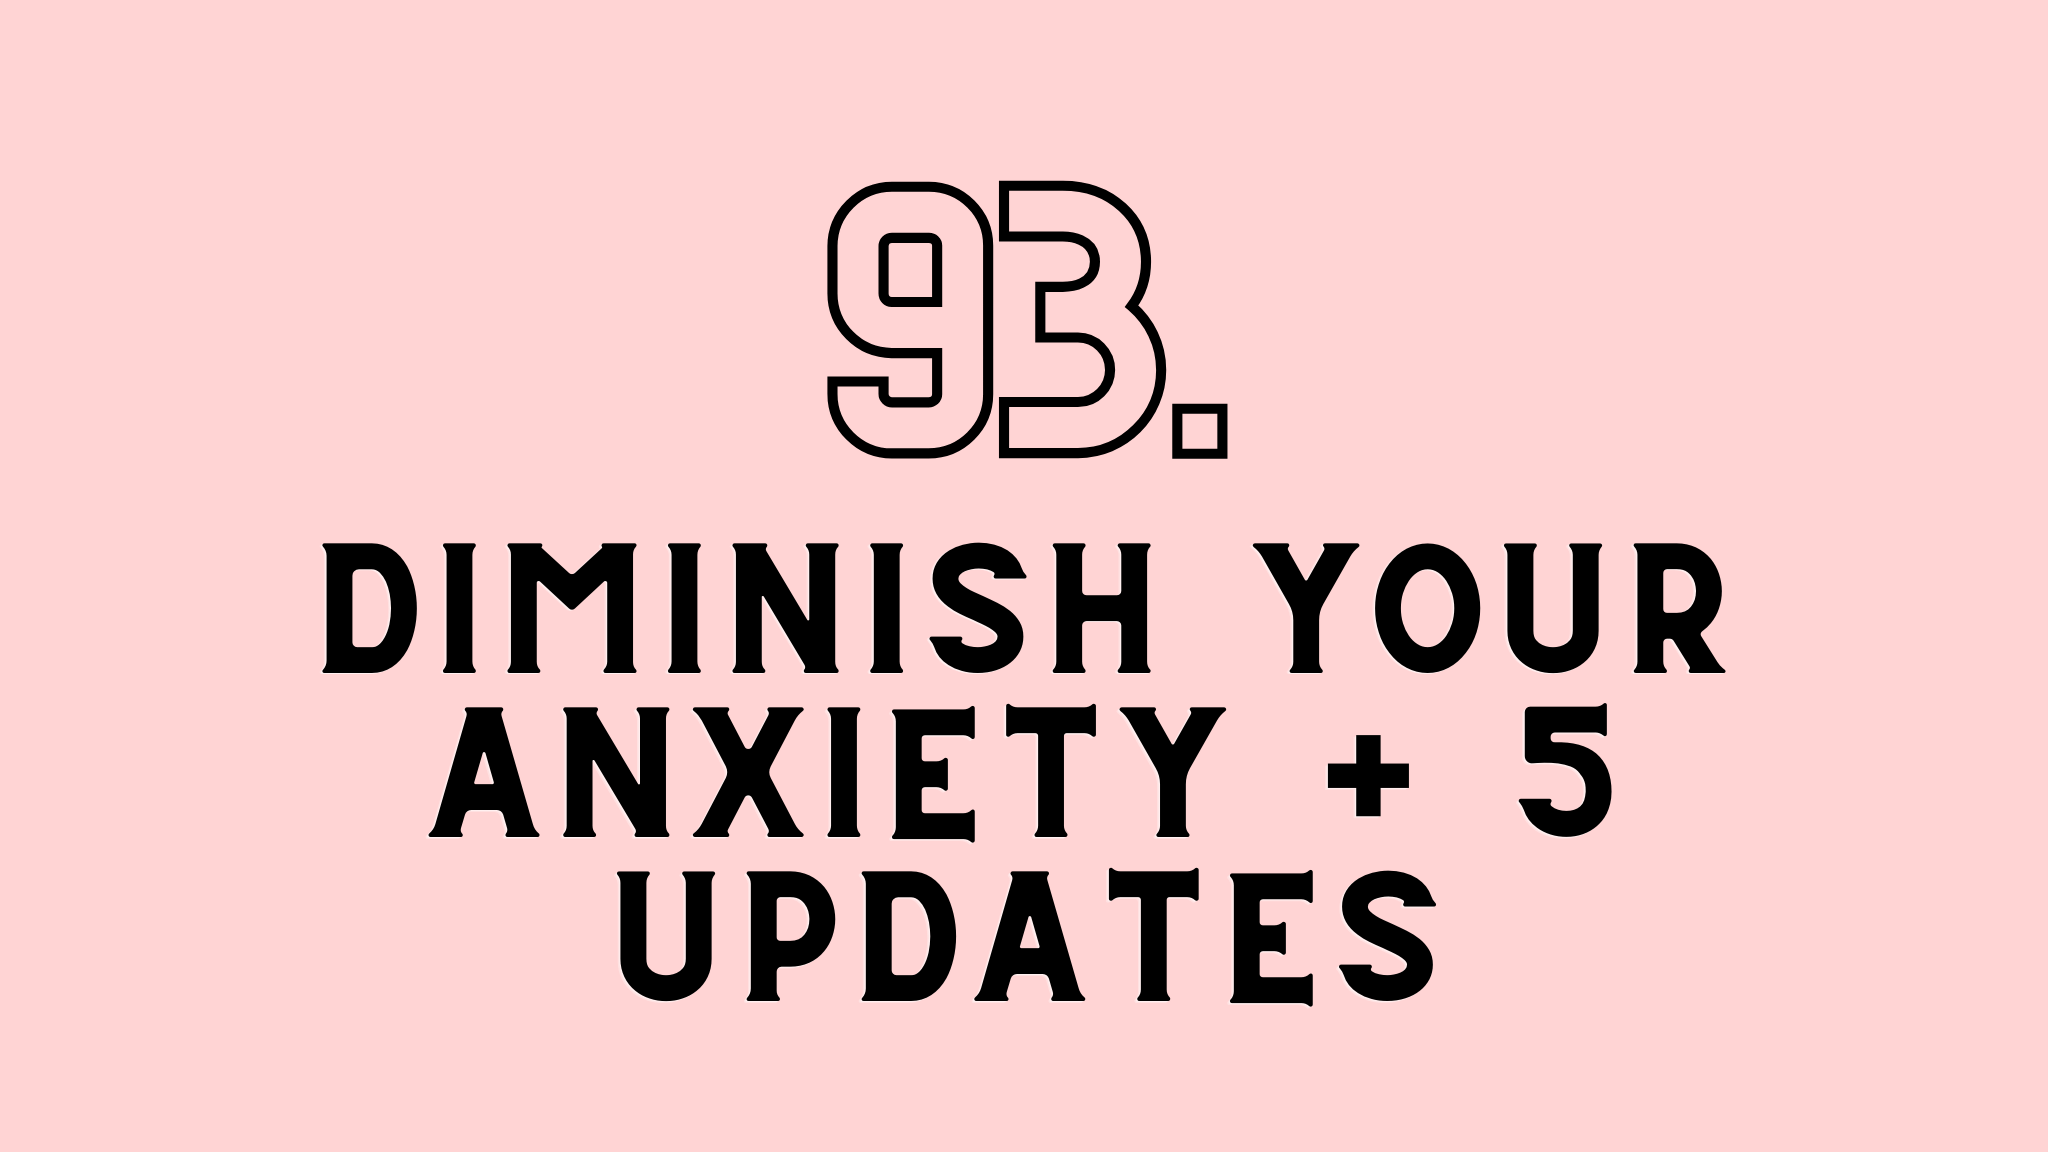 diminish your anxiety